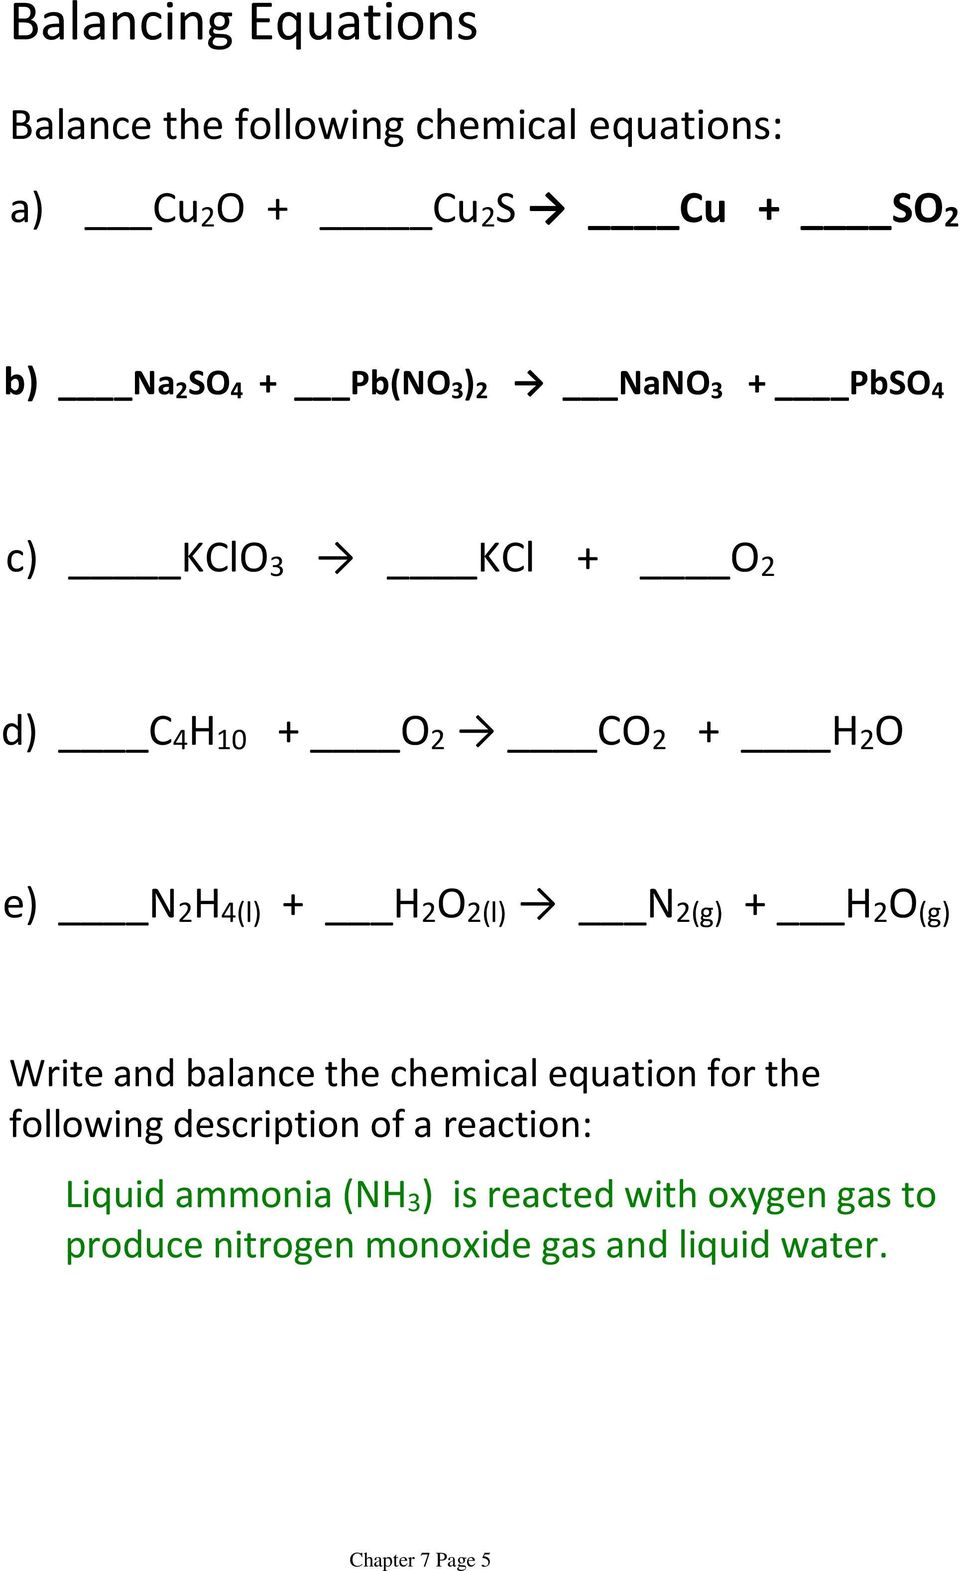 medium resolution of Chapter 7: Chemical Reactions - PDF Free Download